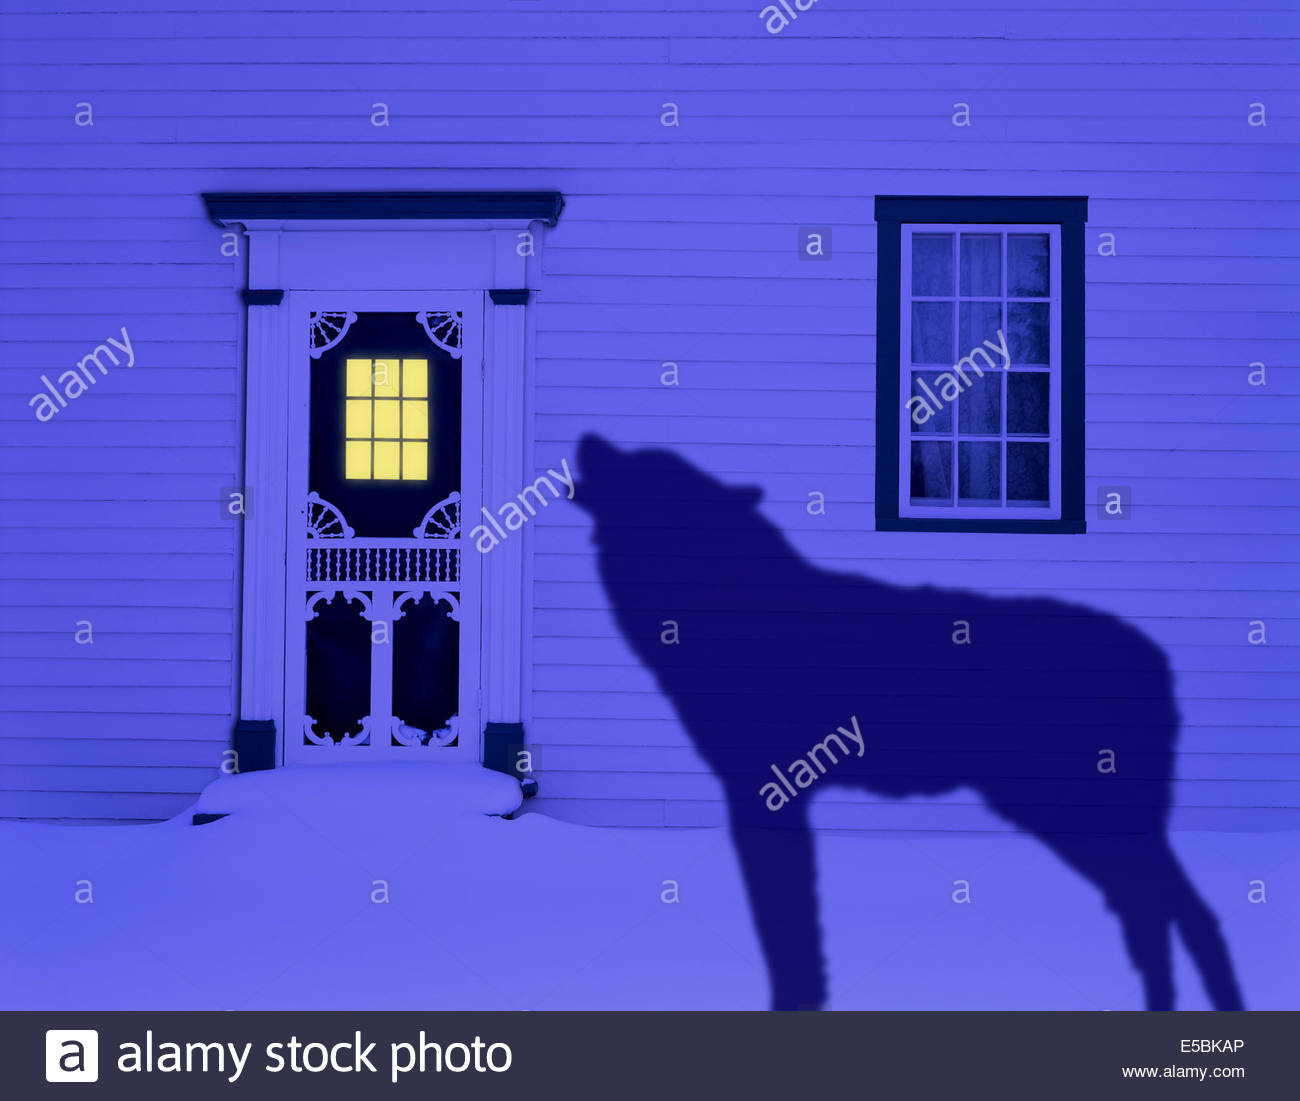 Photo illustration of a proverbial wolf at the door in winter howling to come inside. & Door Illustration Stock Photos \u0026 Door Illustration Stock Images - Alamy